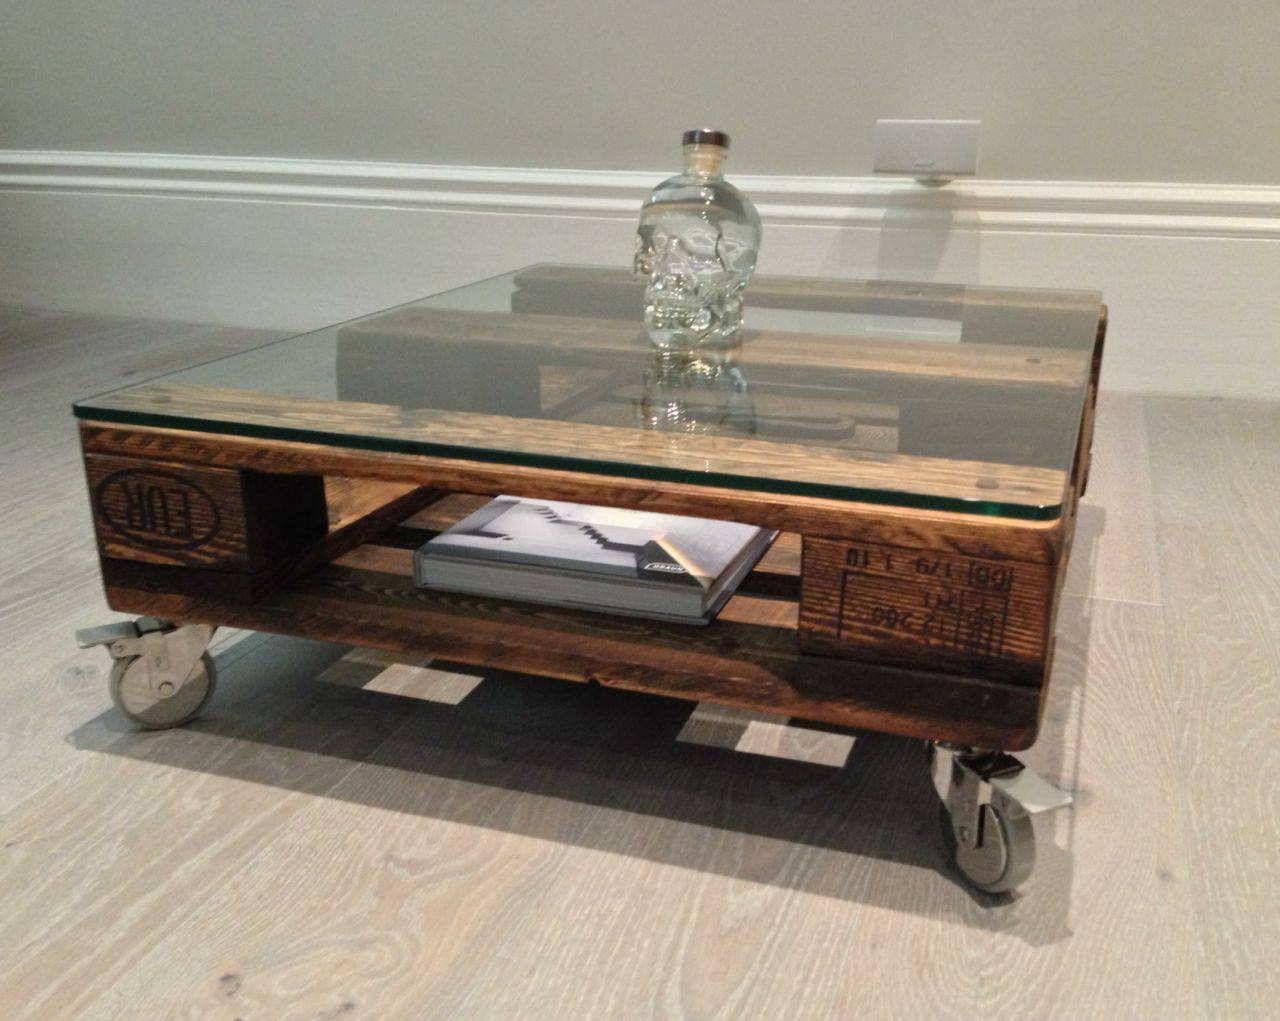 Reclaimed Wood Coffee Table Glass Topherpowerhustle throughout Reclaimed Wood and Glass Coffee Tables (Image 22 of 30)